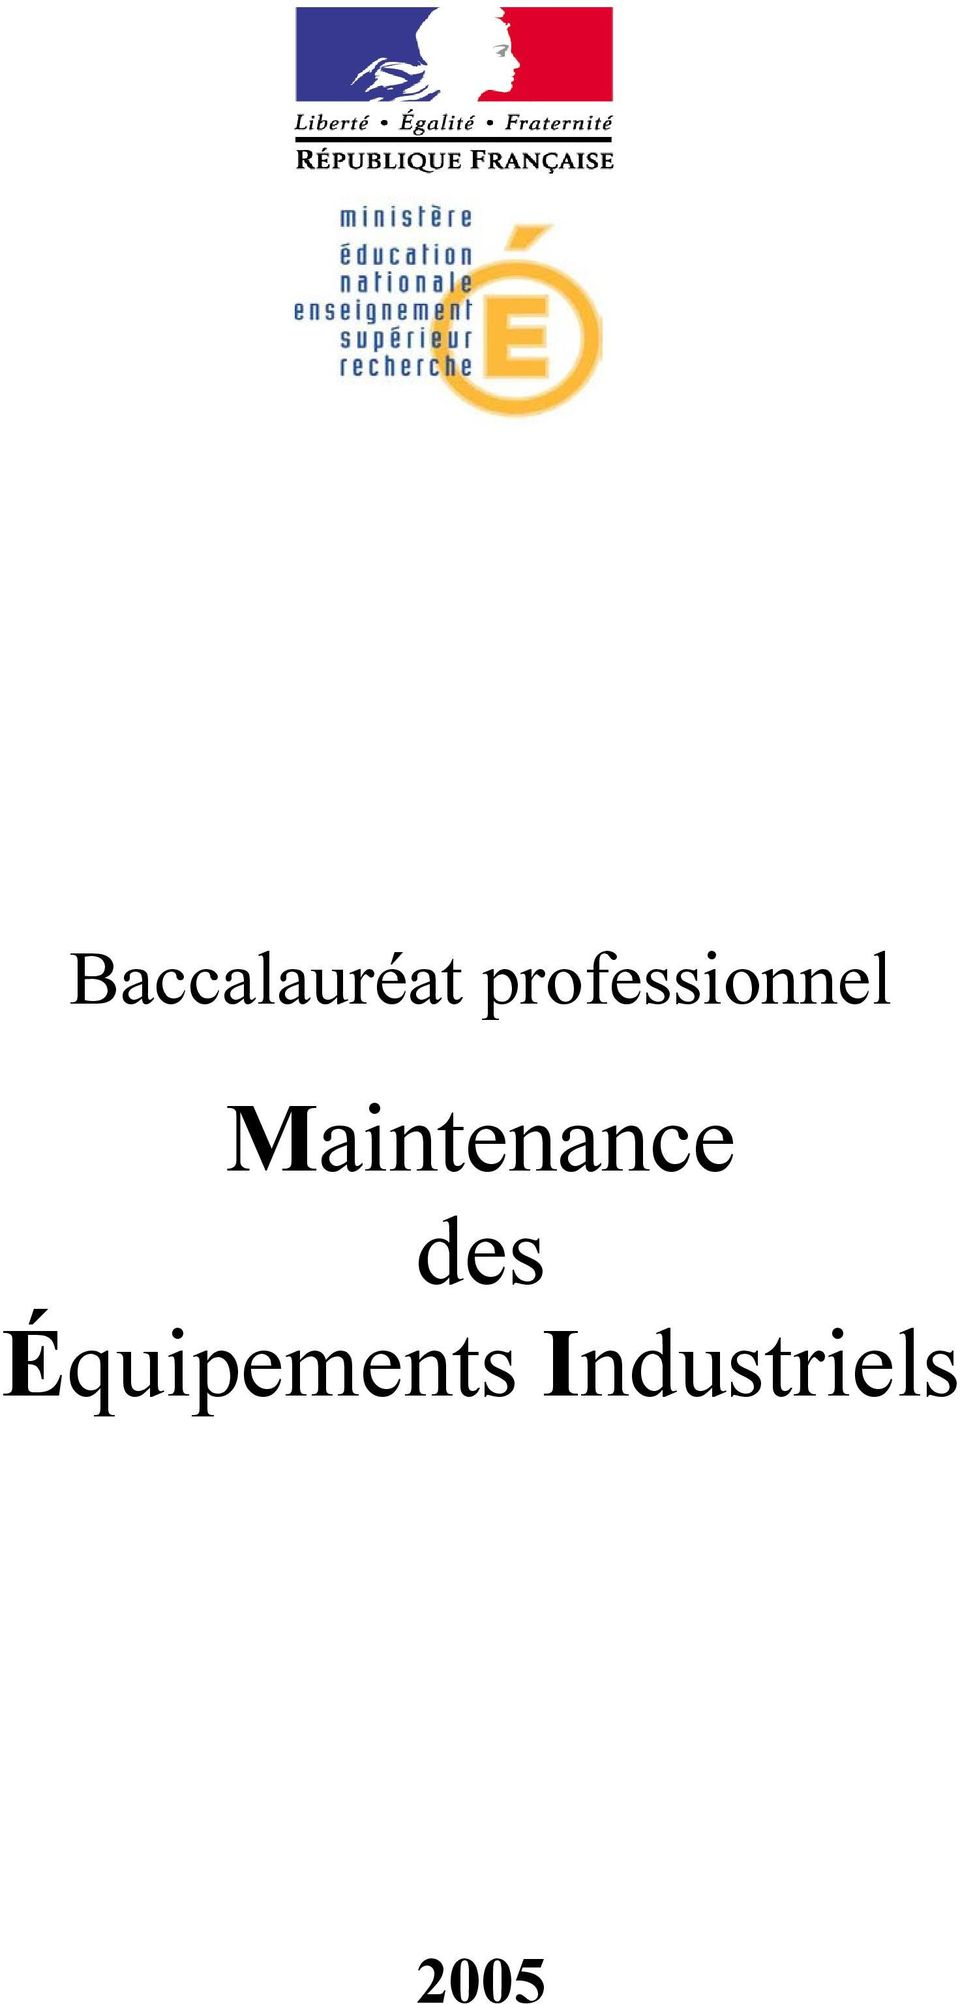 Maintenance des